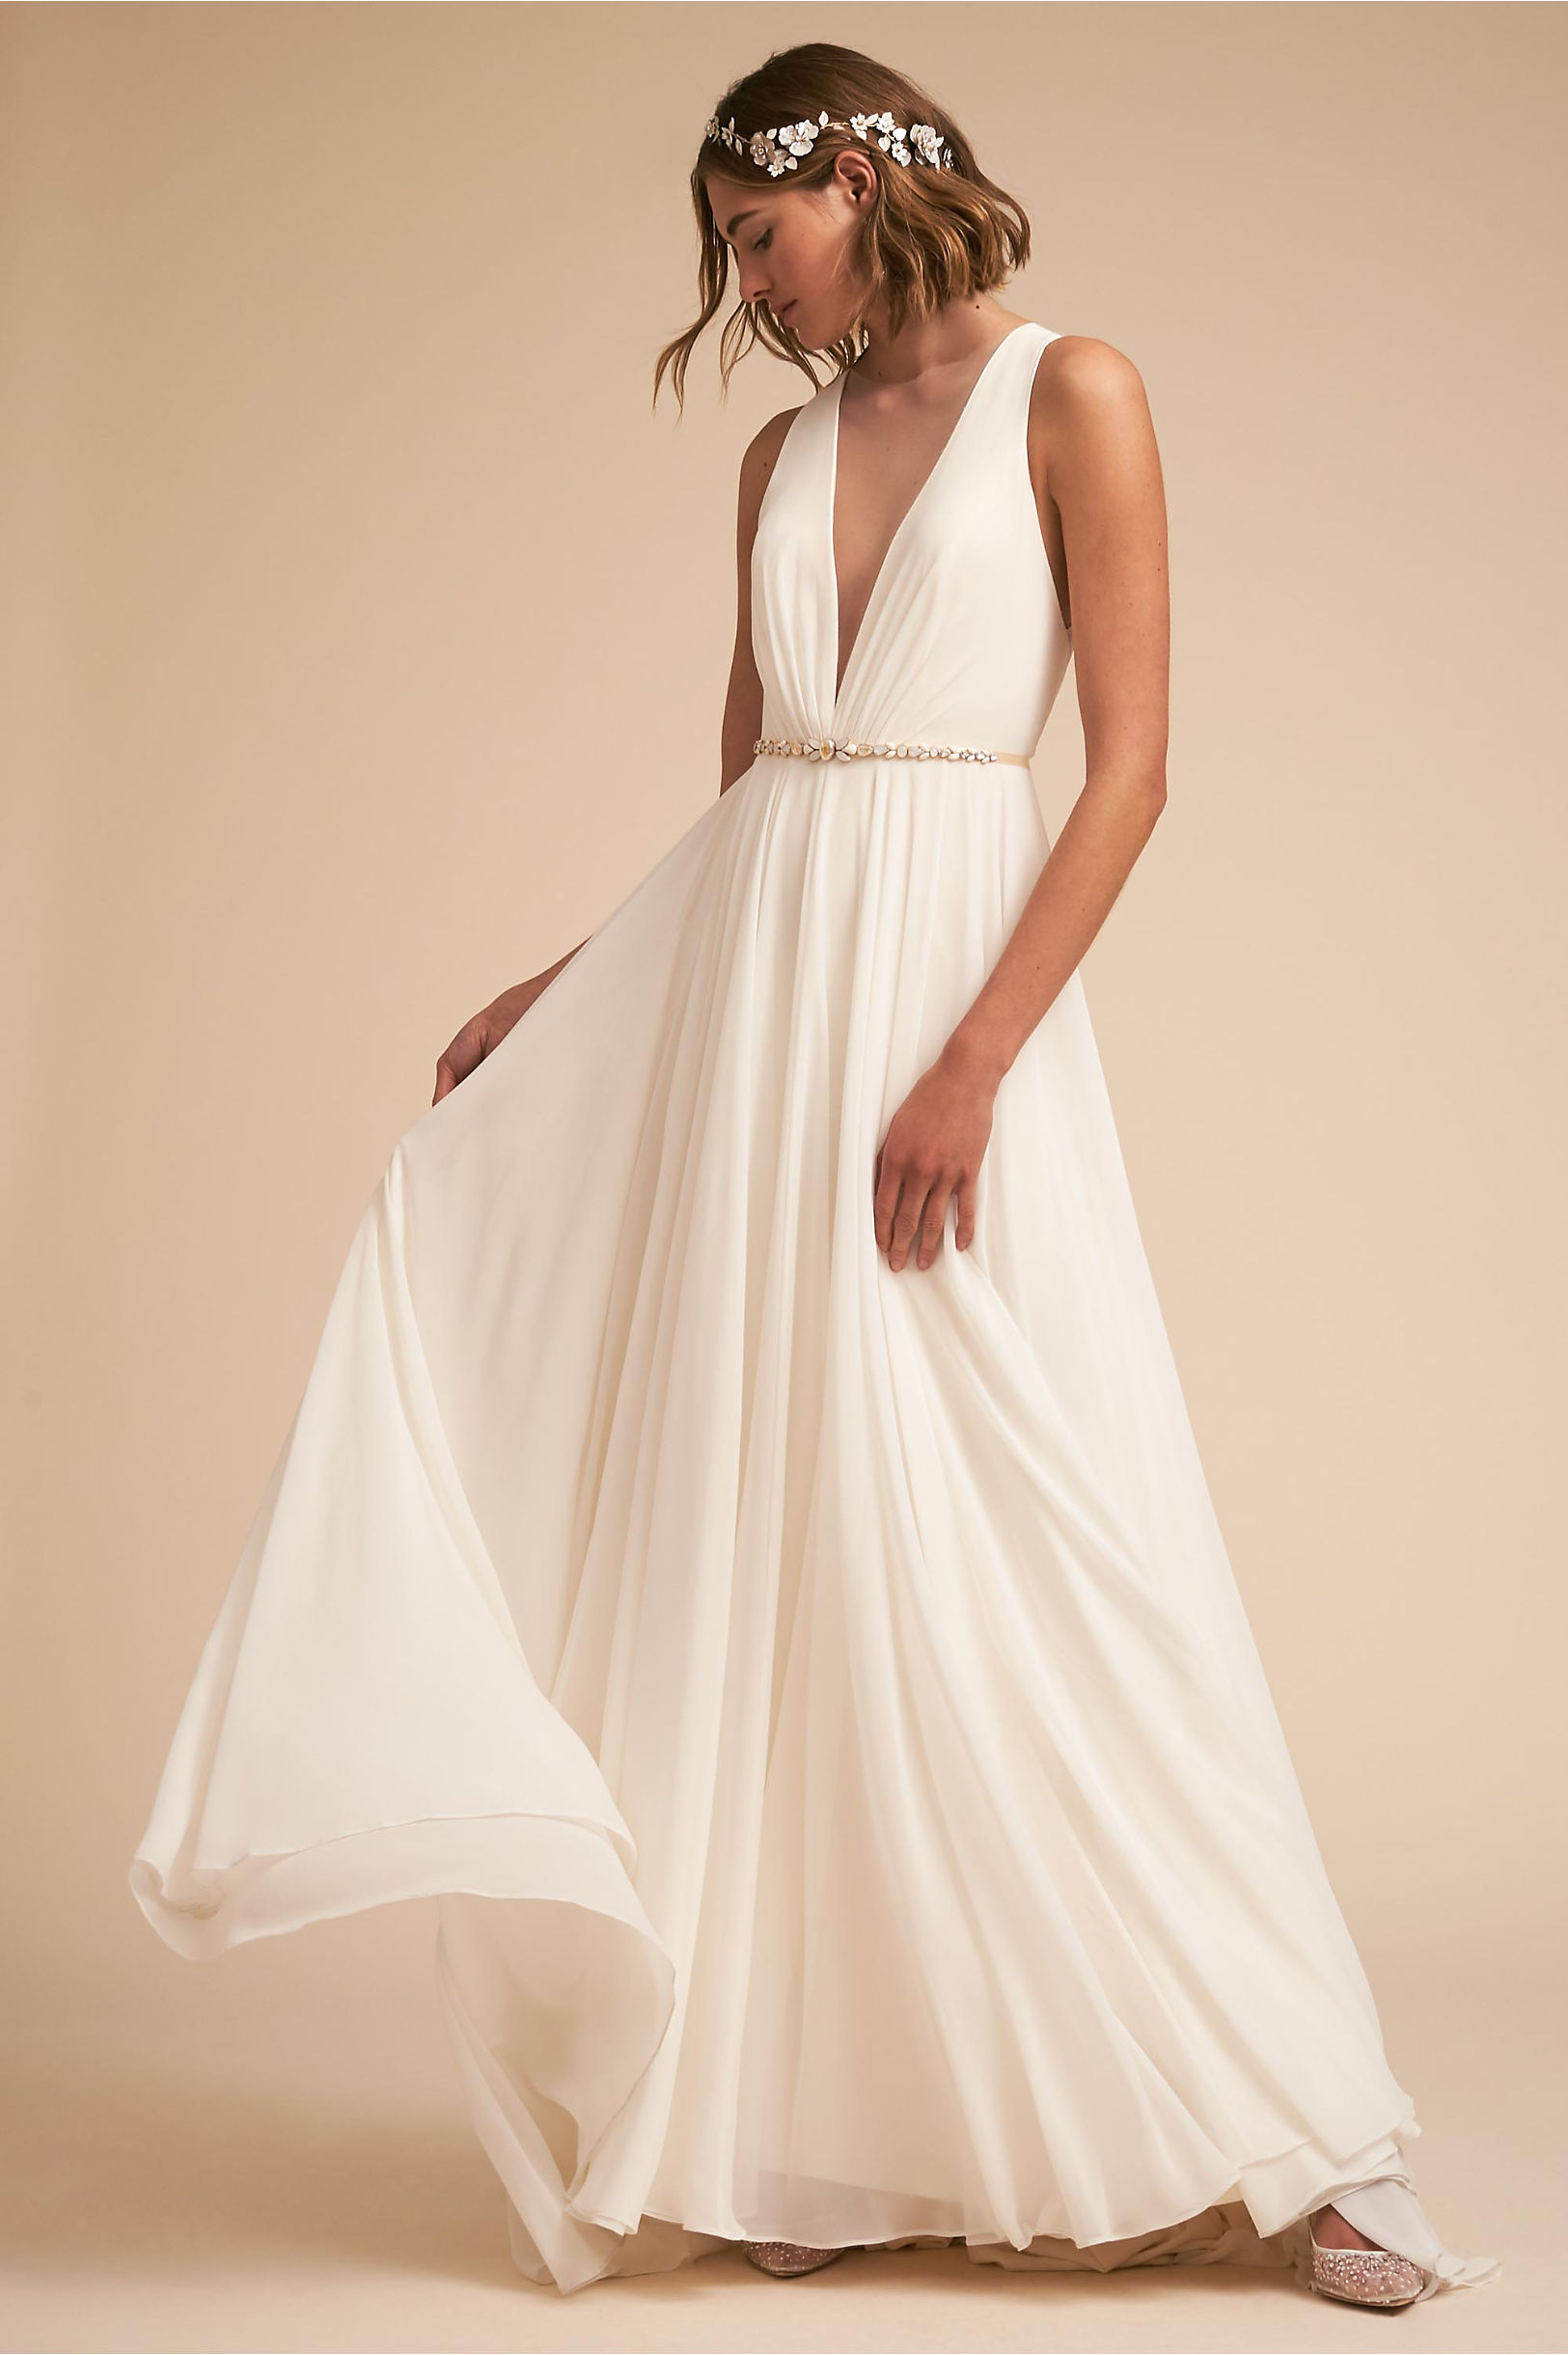 Conrad sleeveless wedding dress plunging neckline a line skirt jenny by jenny yoo bhldn spring 2018